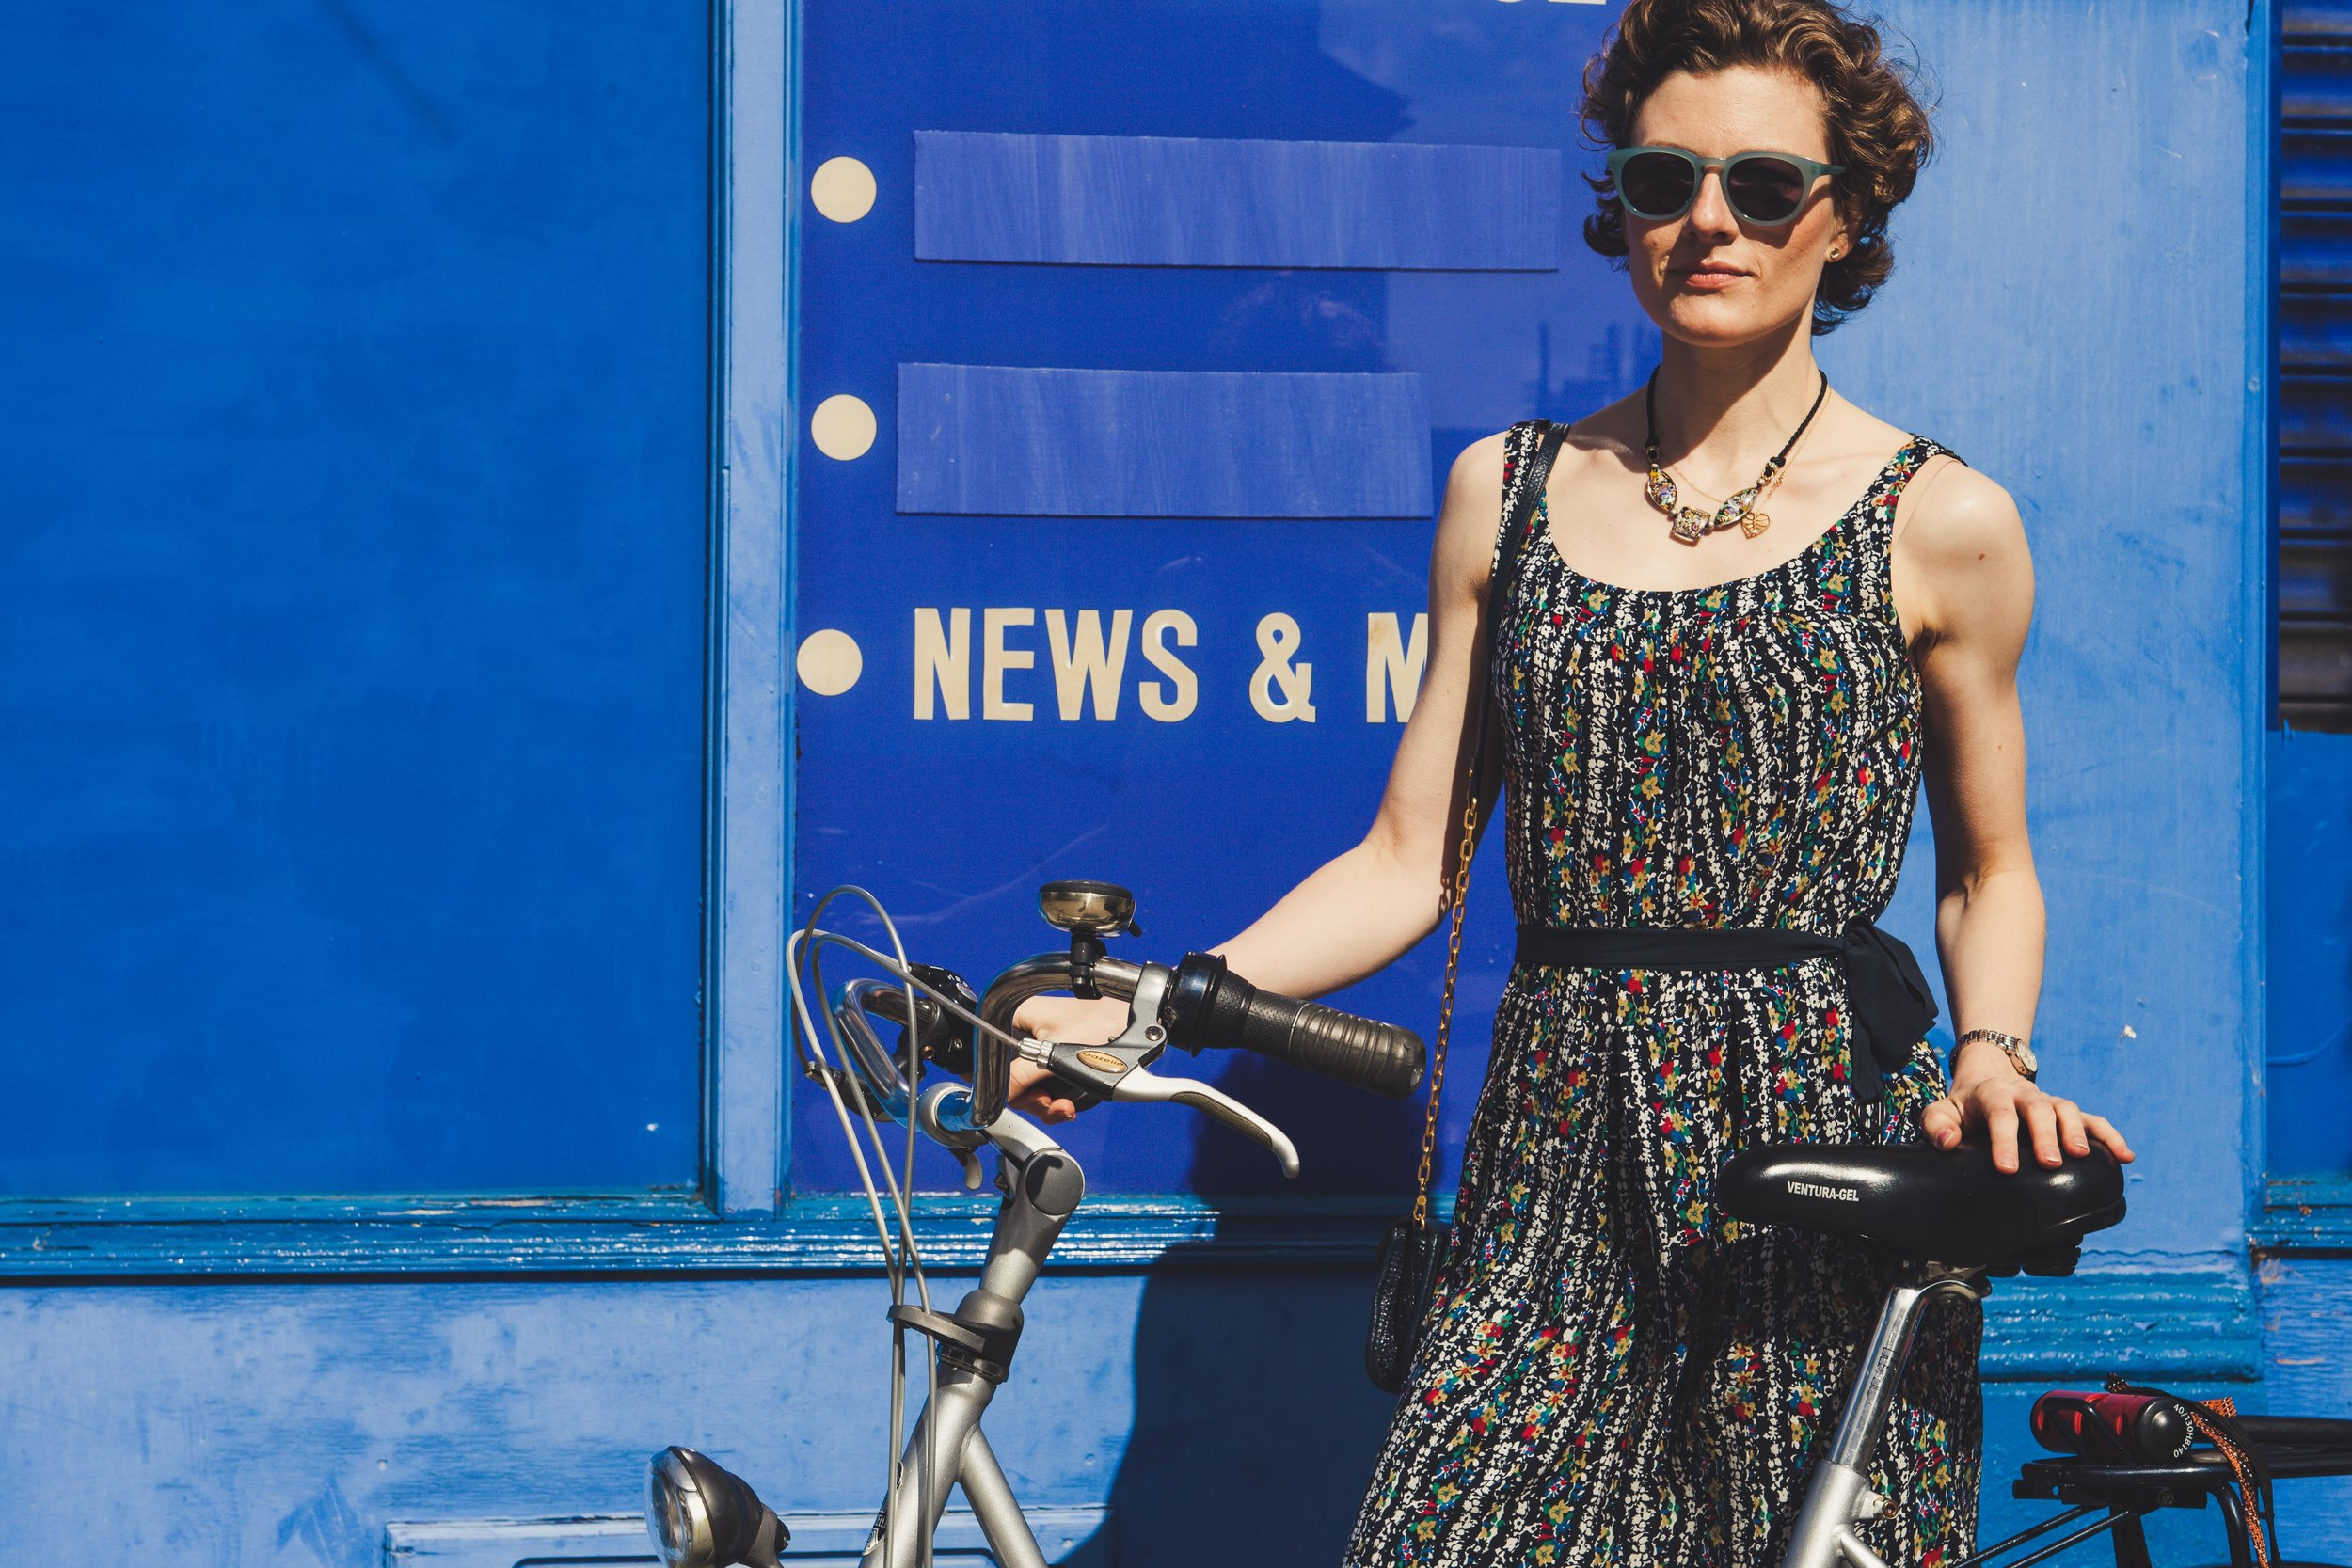 Lady_and_Bicycle.jpg